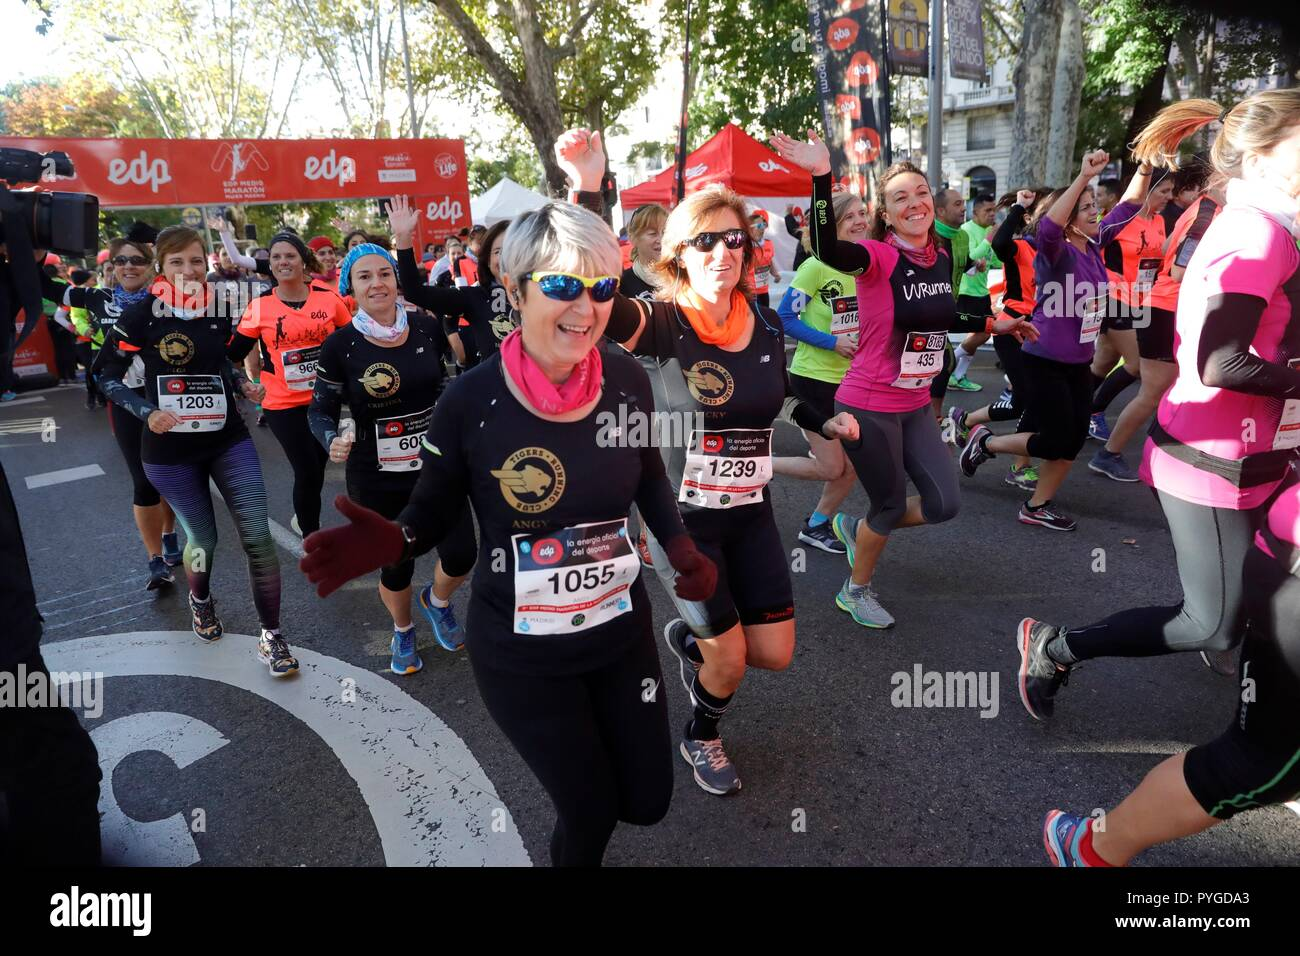 Runners compete during Madrid Women Half Marathon in the Spanish capital, 28 October 2018. This year's edition of the competition aims to support the women's sports and to fight against the Female genital mutilation. EFE/ Juanjo Martín - Stock Image